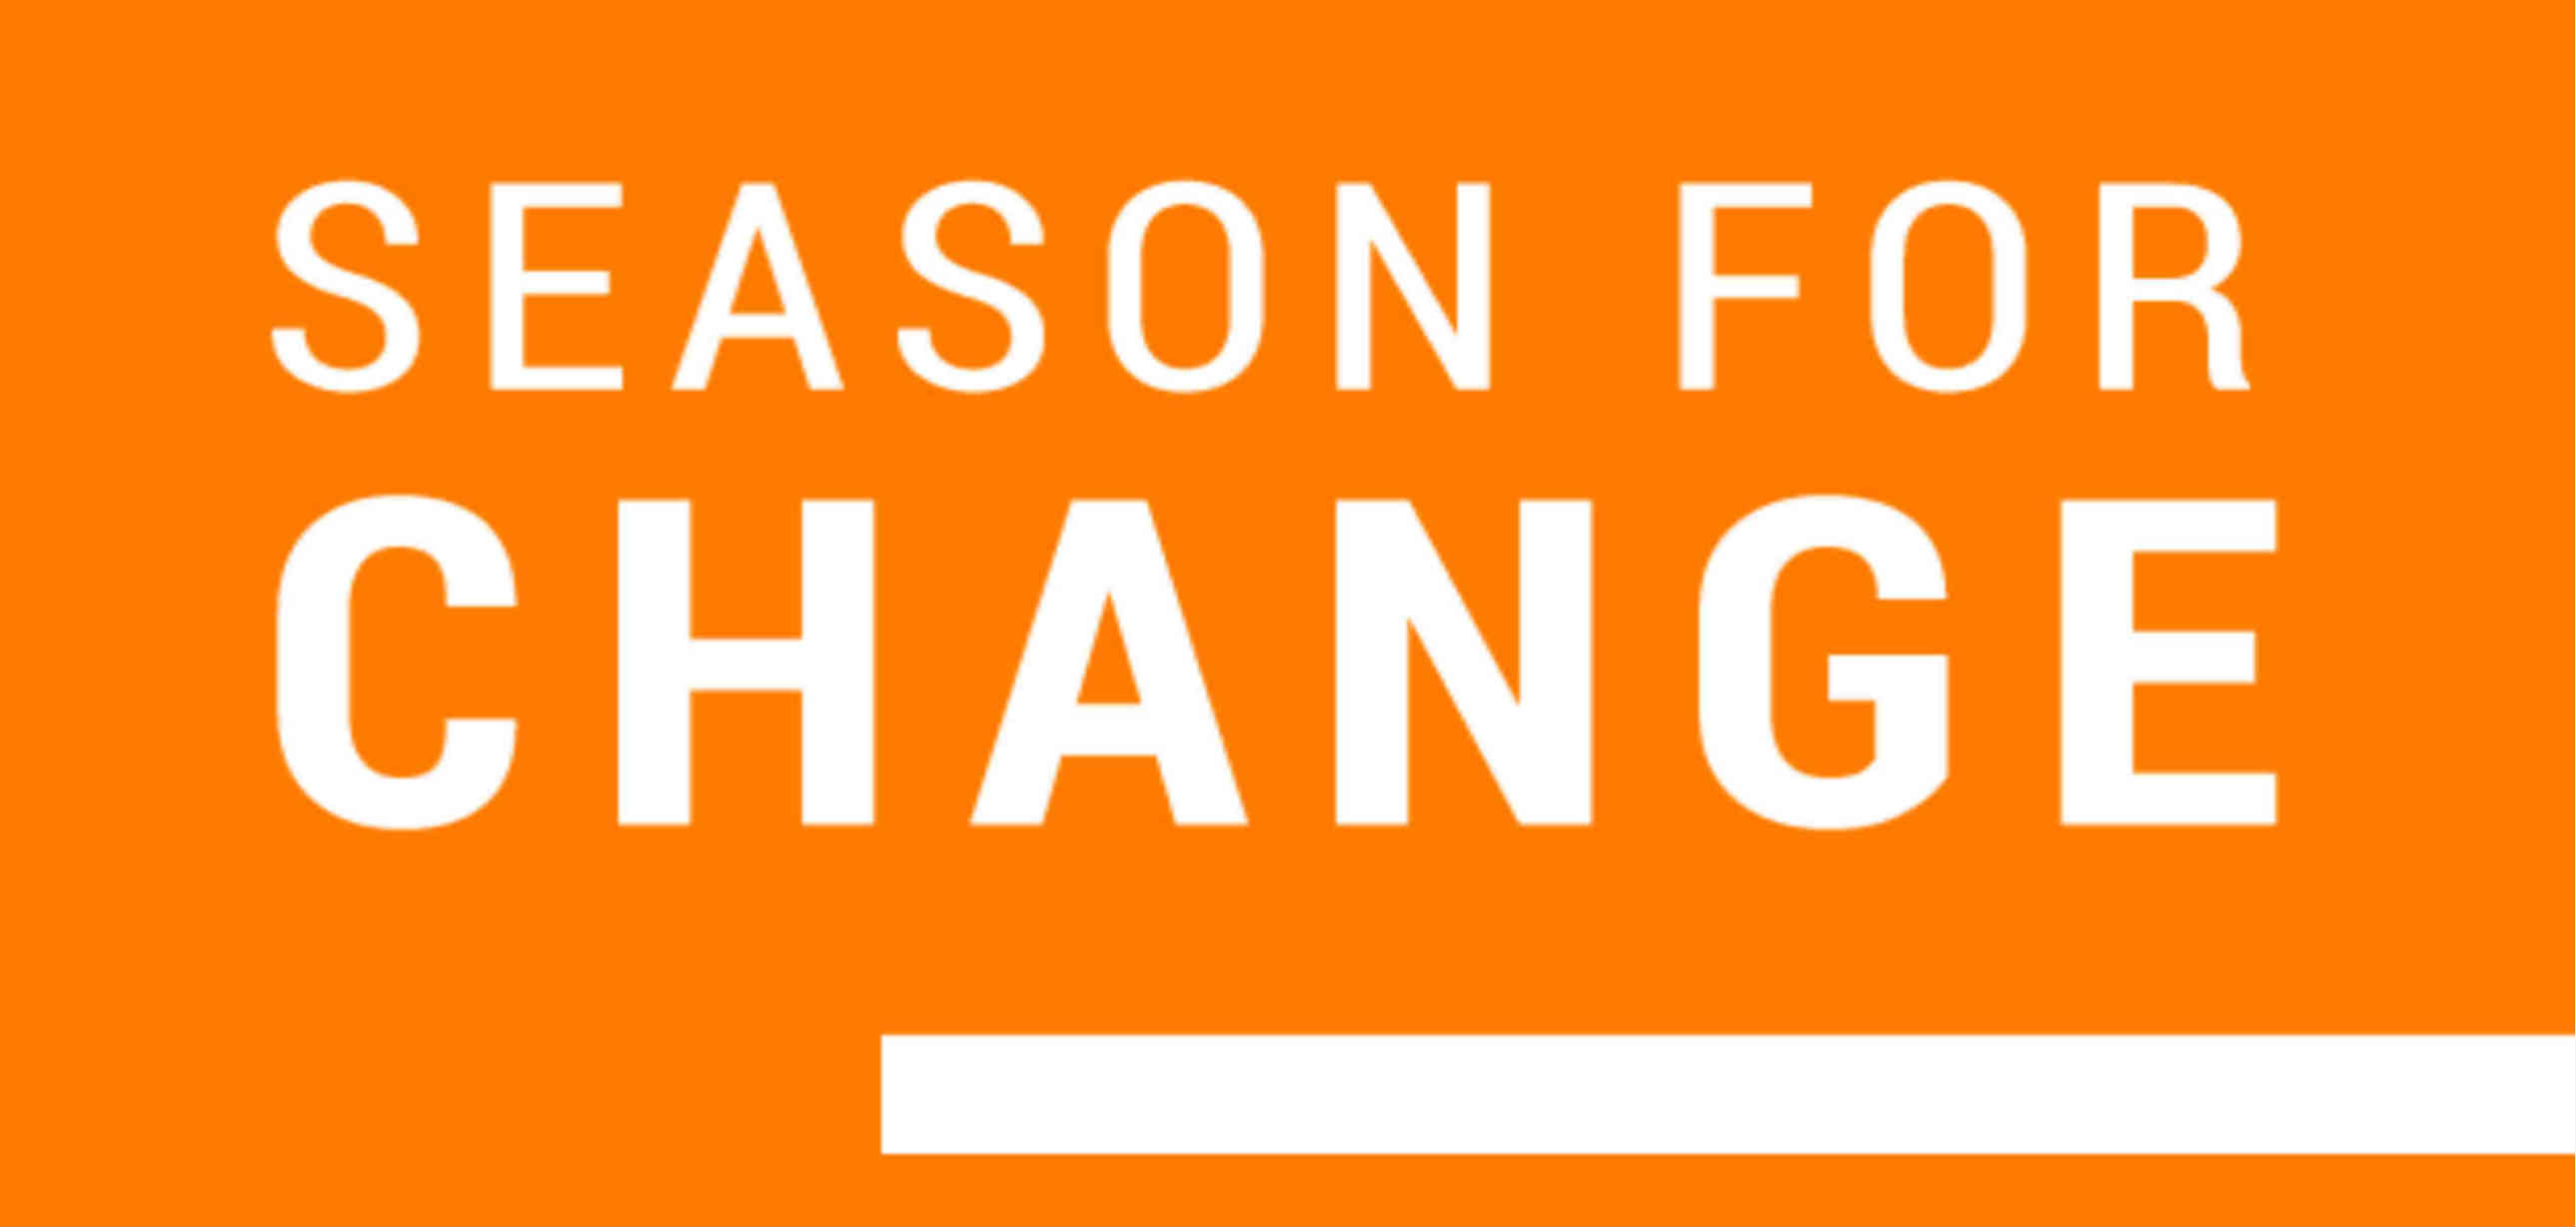 Season for Change logo - white text on an orange background